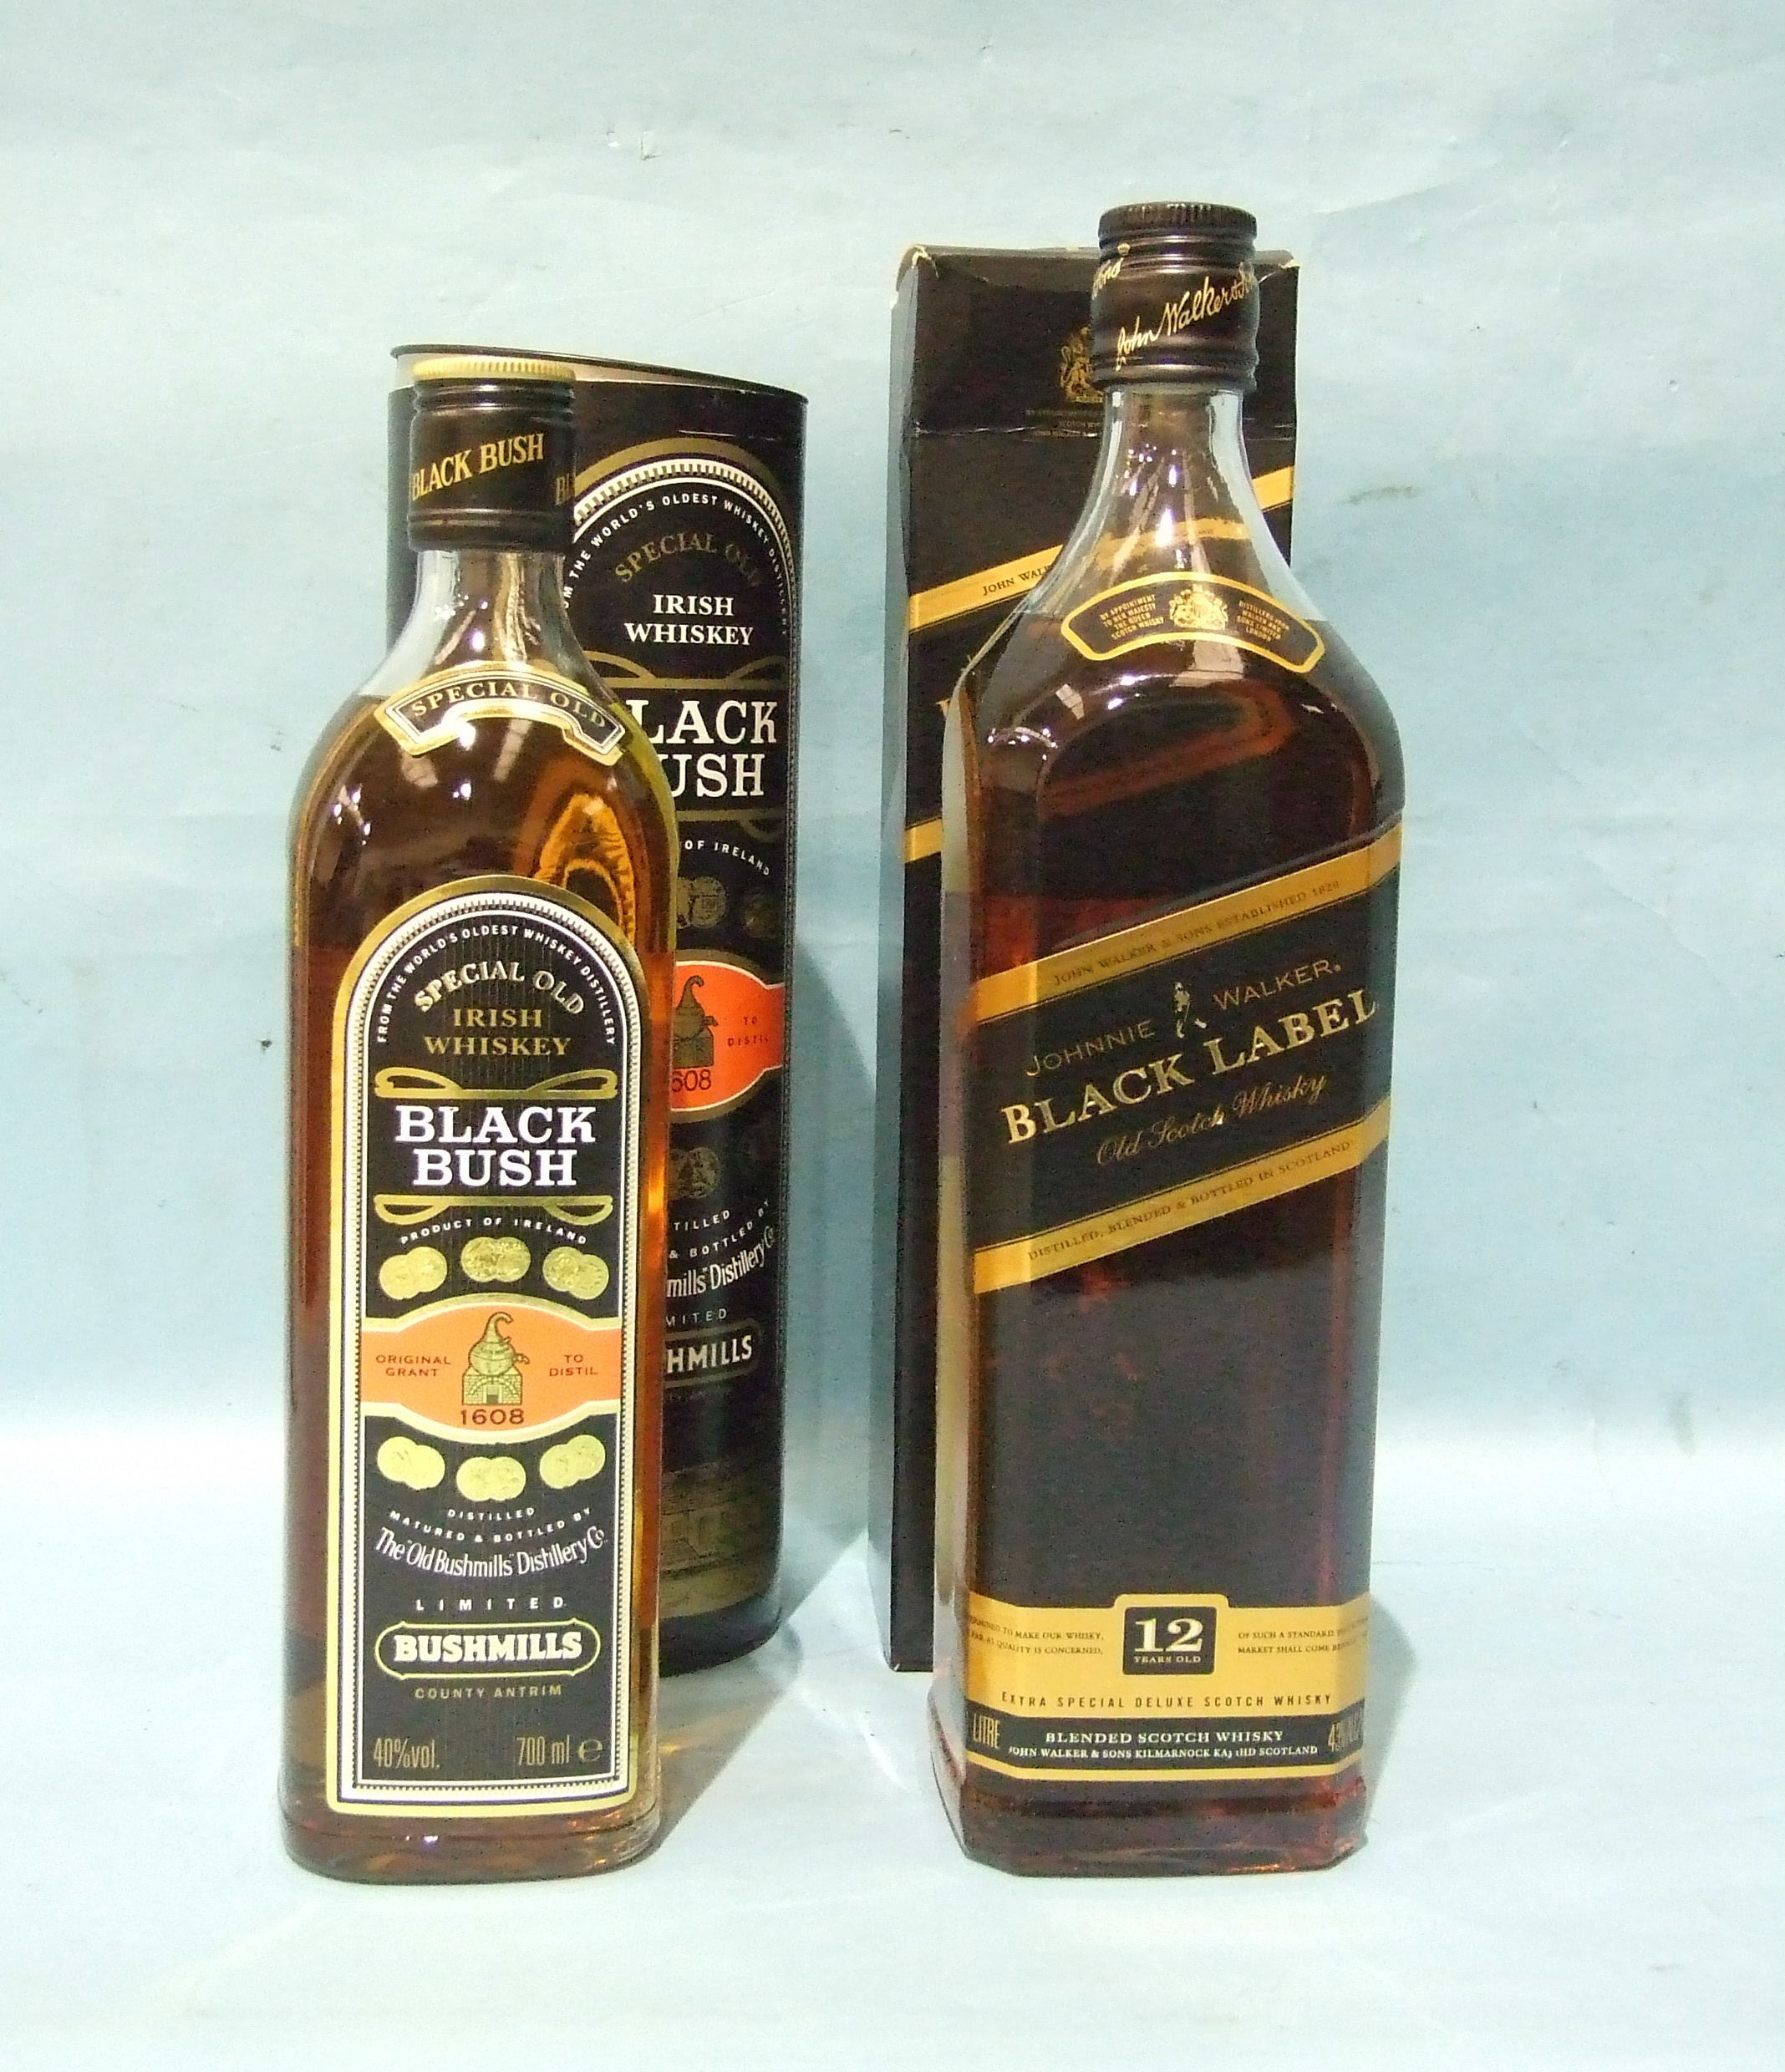 Lot 44 - Johnnie Walker 12-year-old Black Label Blended Whisky, 43% vol, 1L, in carton and a bottle of